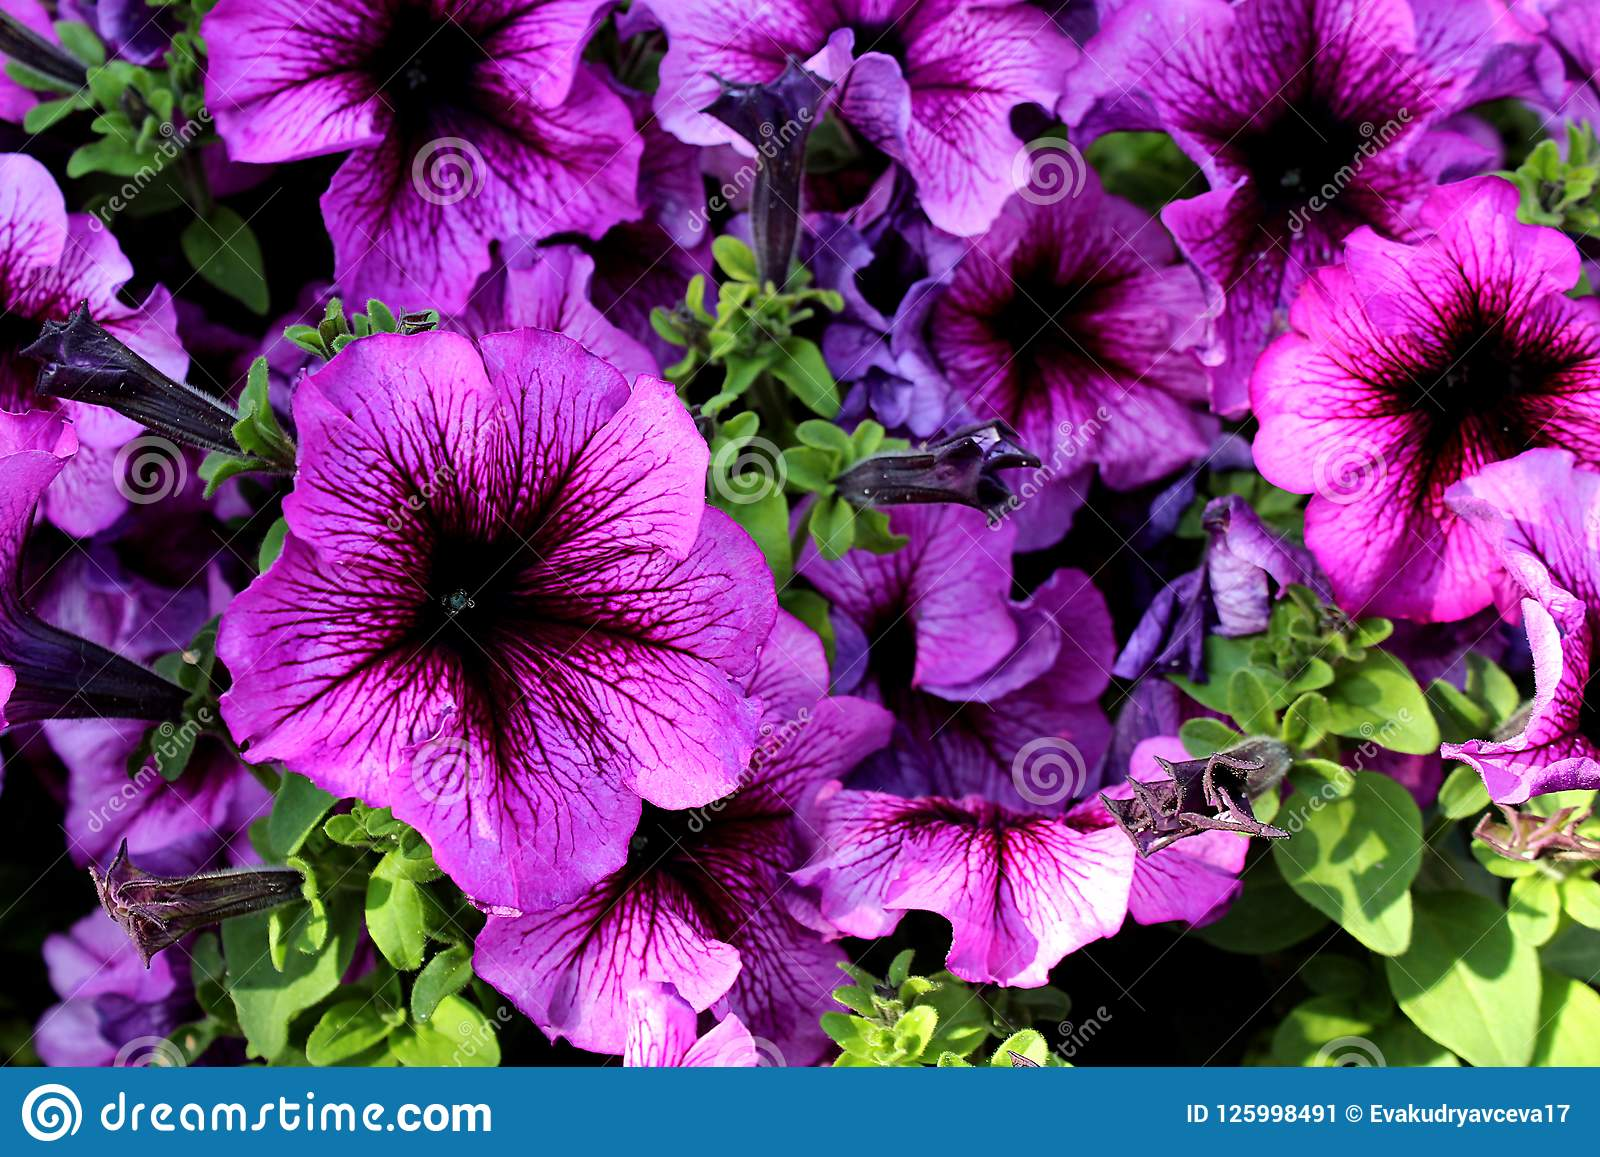 Lots Of Flowers Growing Outdoors Purple Color Stock Image Image Of